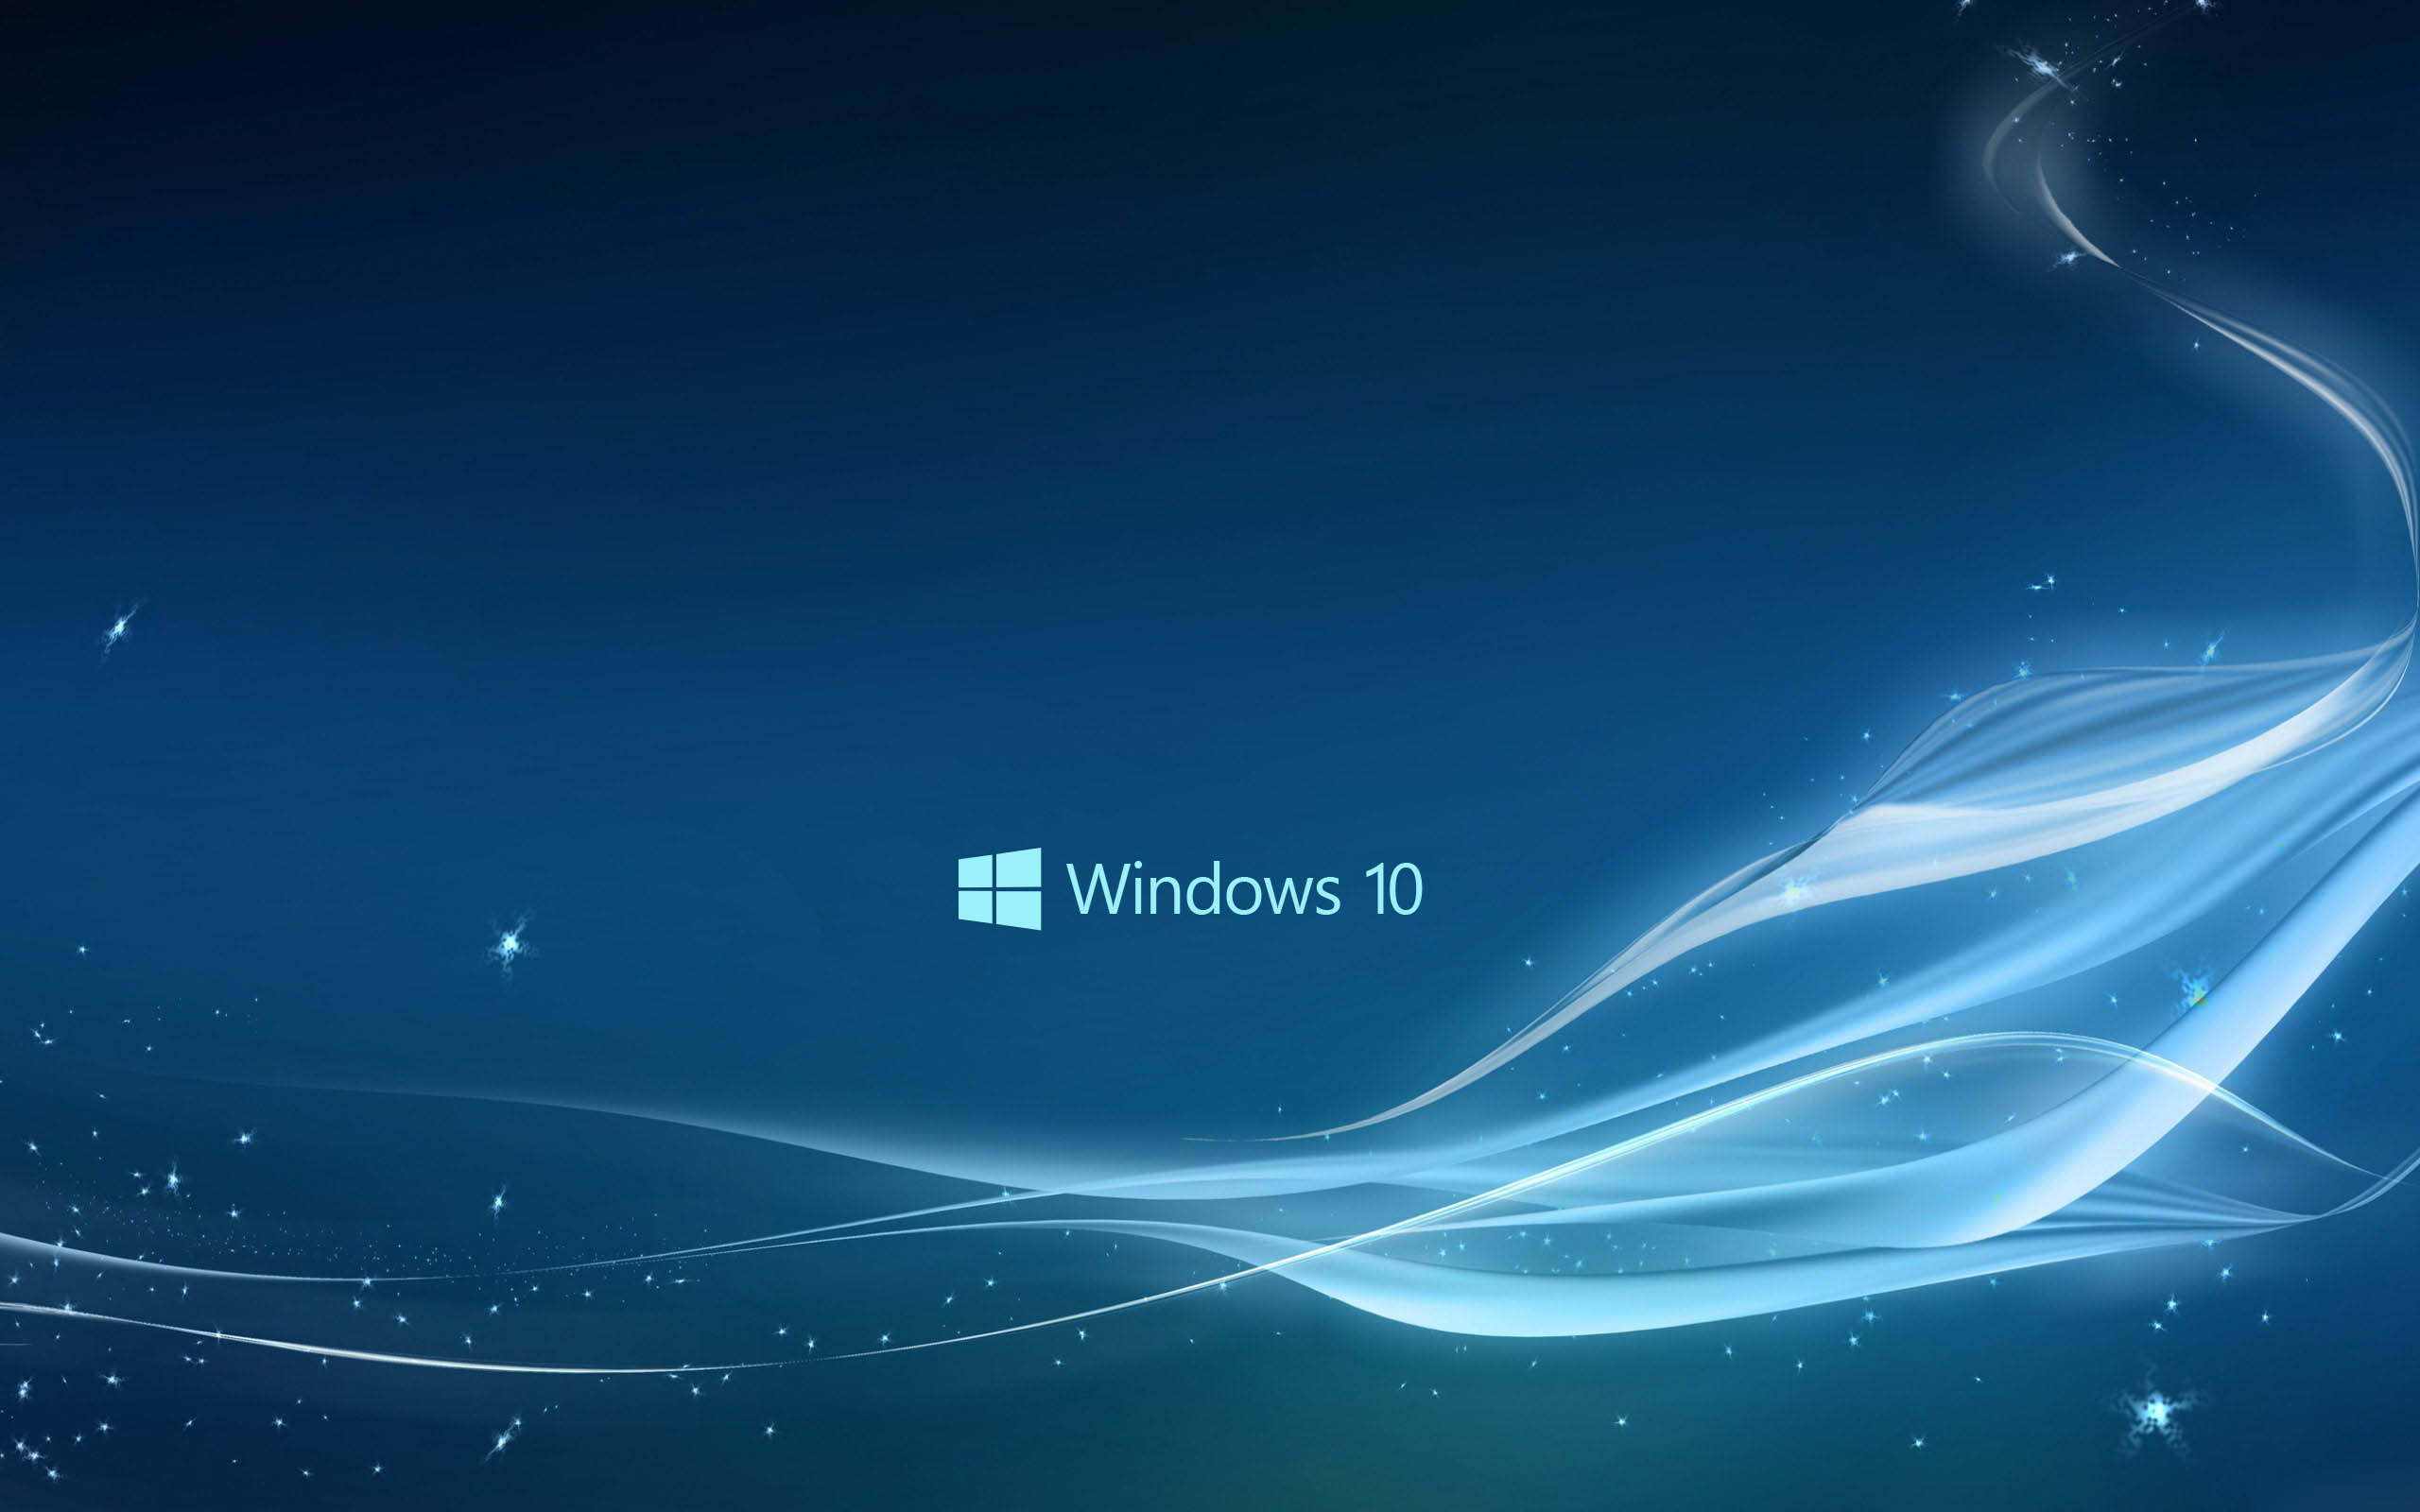 Windows 10 wallpapers high quality download free for High quality windows